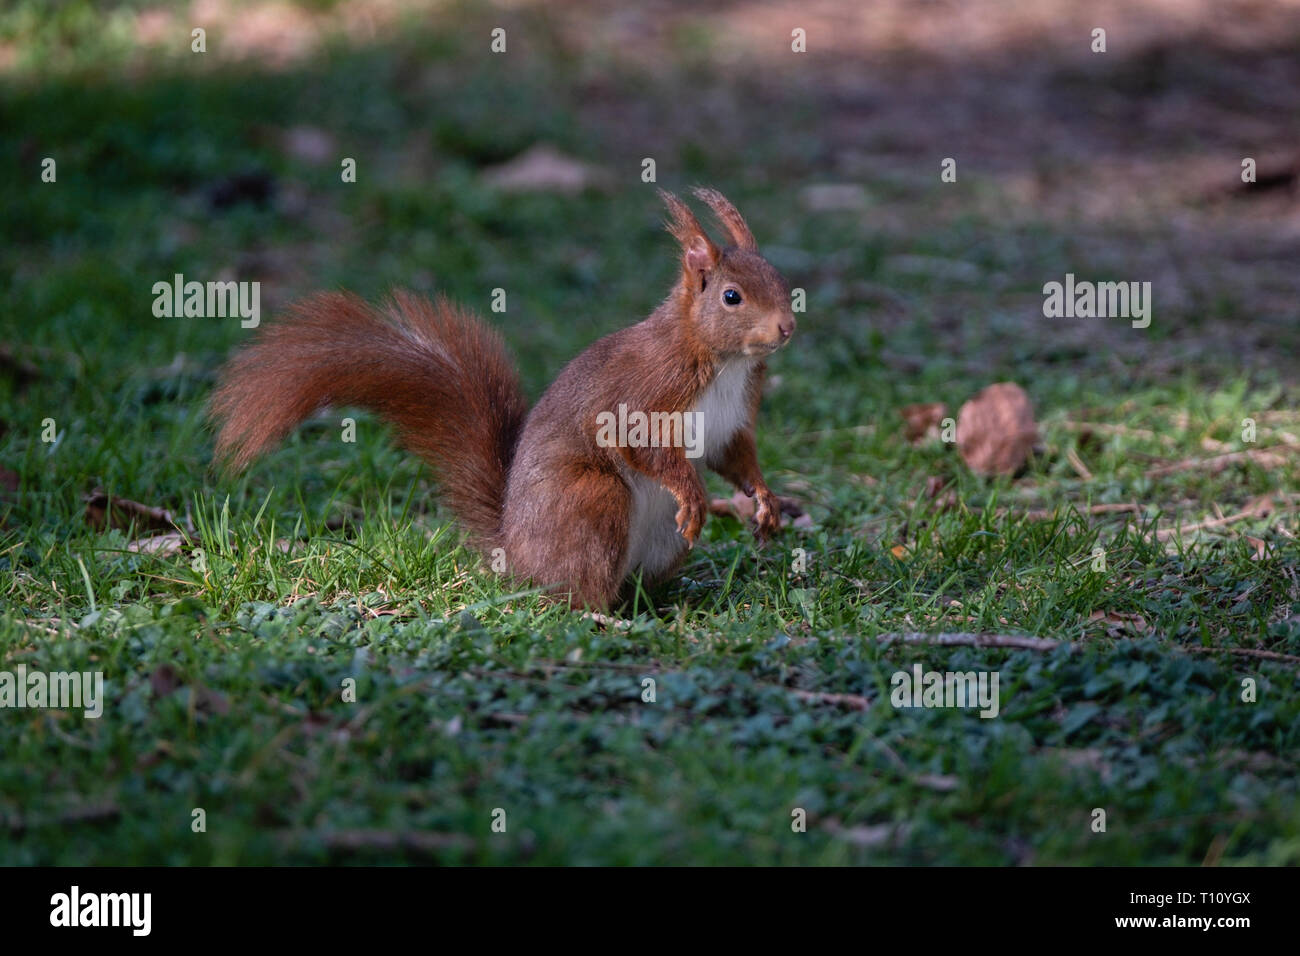 squirrel in the grass - Stock Image